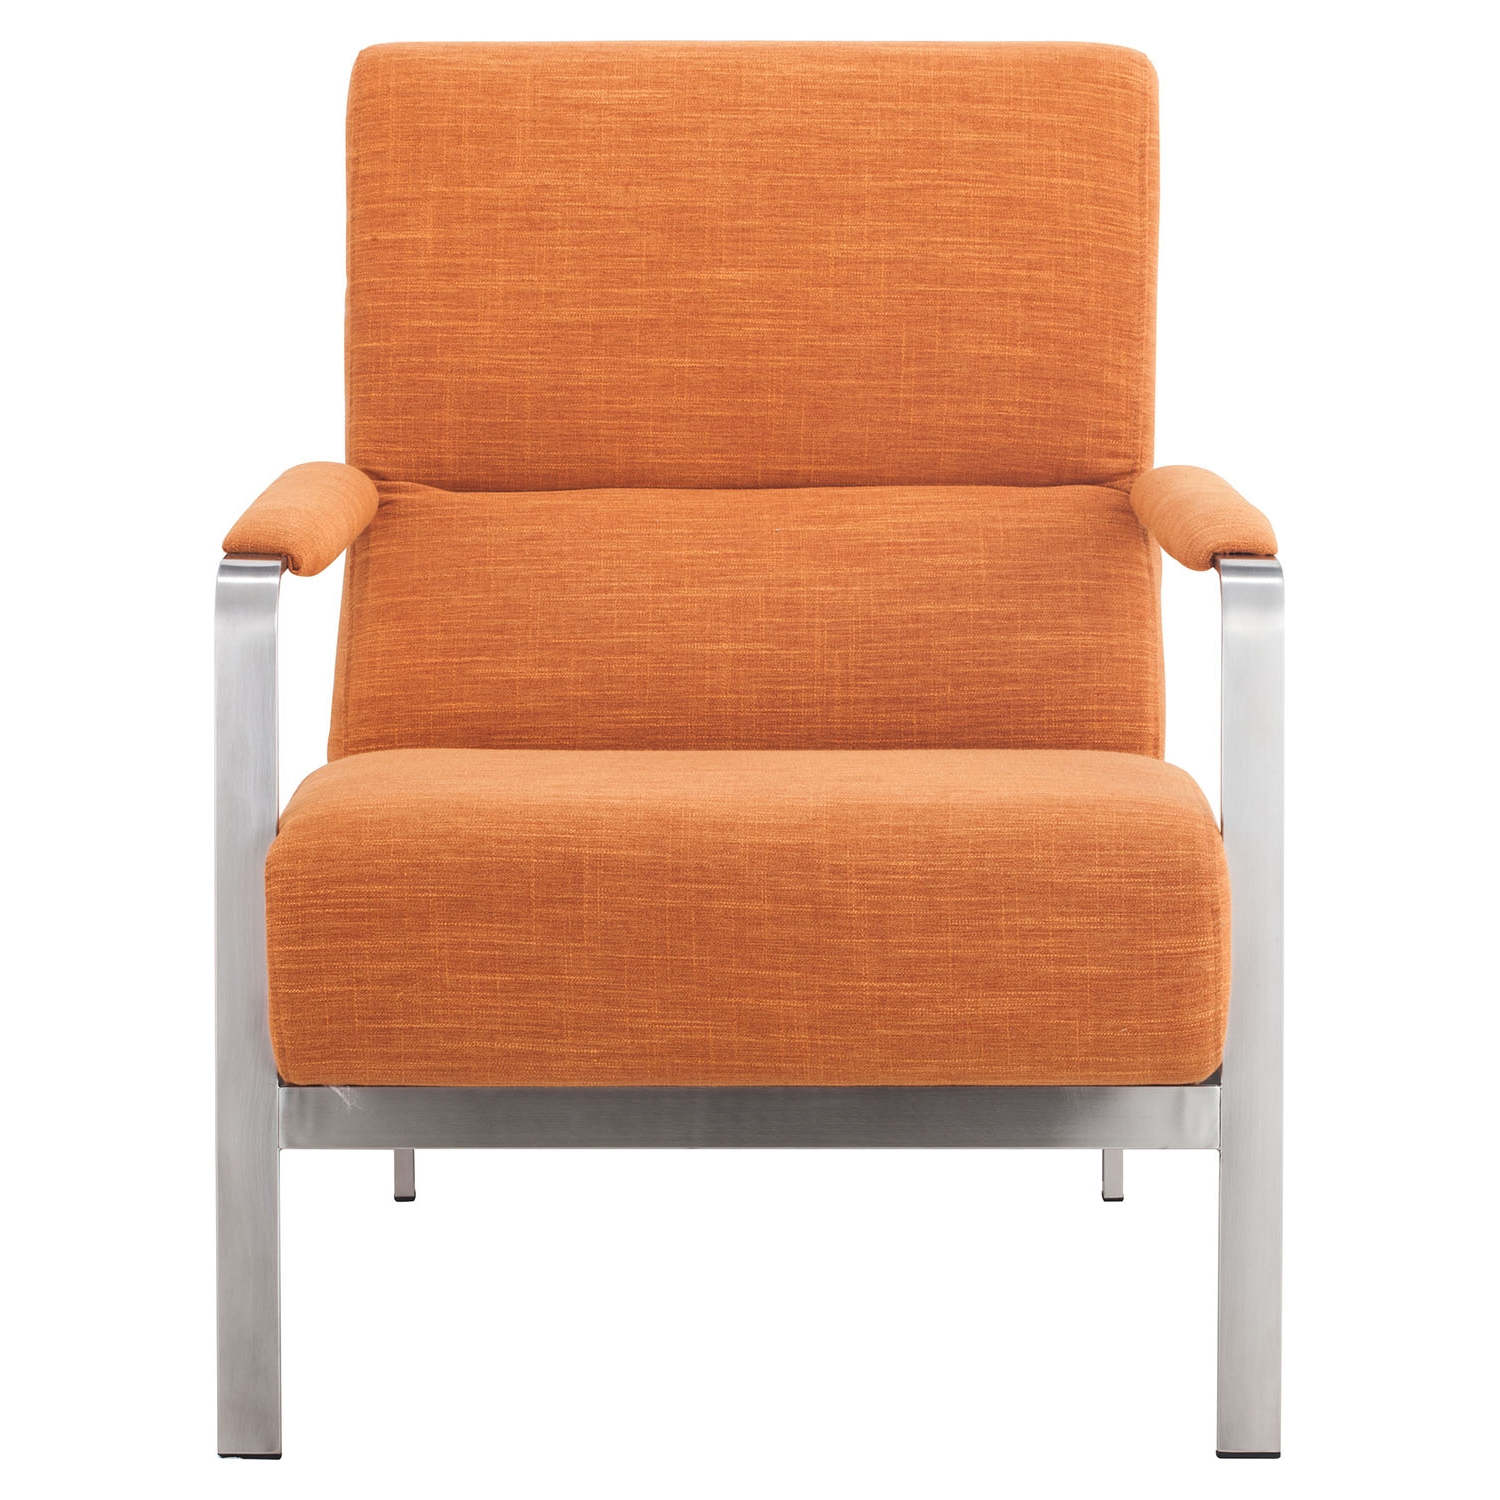 Jonkoping Arm Chair - Orange - ZM-500347